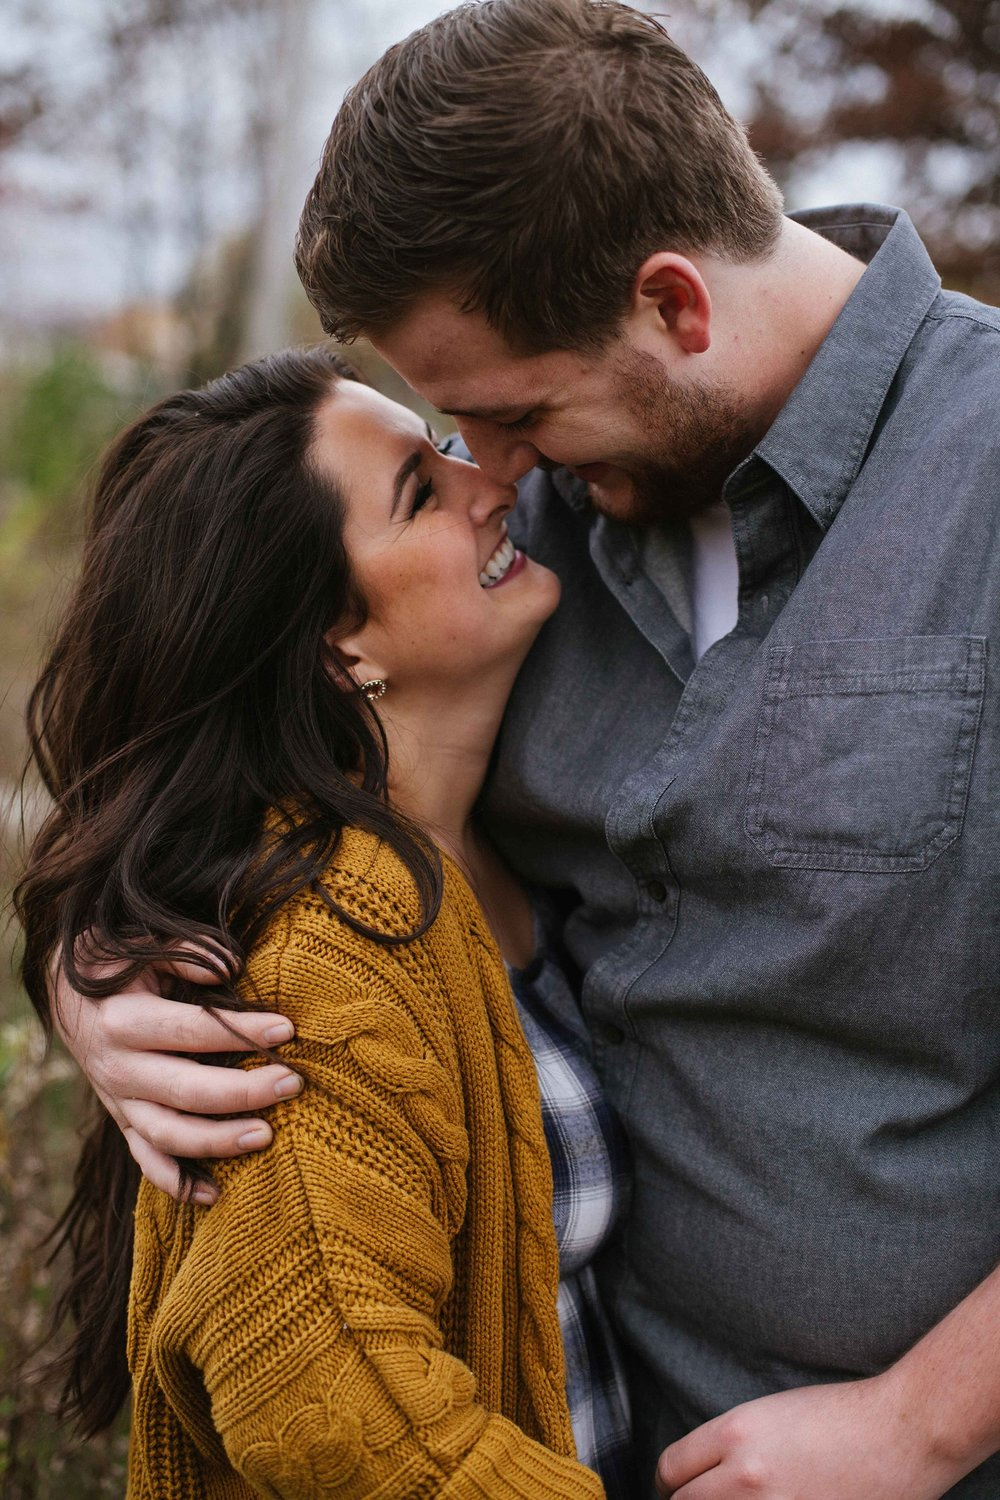 Madison Wisconsin Engagement Photographer Chloe Ann Photography_0021.jpg